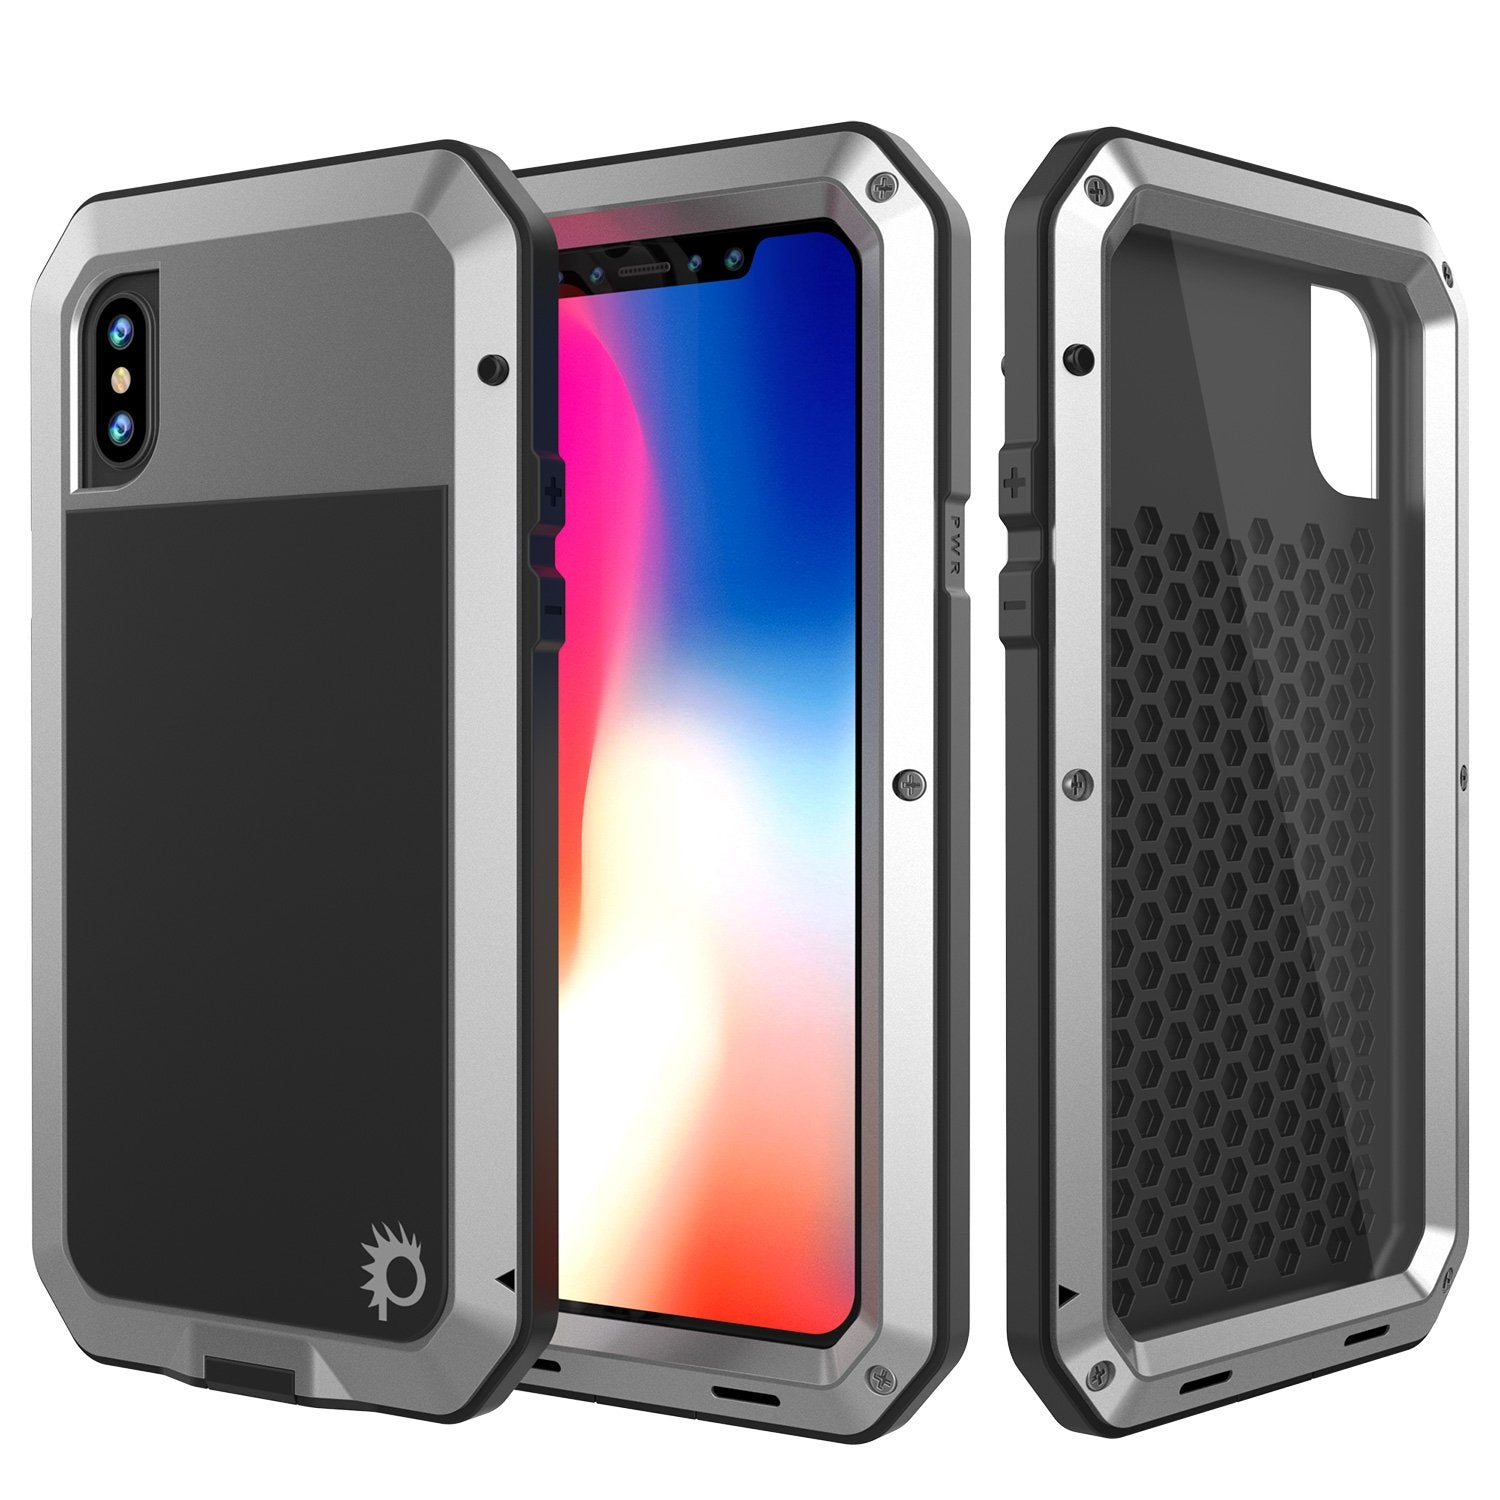 sale retailer 850a7 292d0 iPhone XS Max Metal Case, Heavy Duty Military Grade Armor Cover [shock  proof] Full Body Hard [Silver]